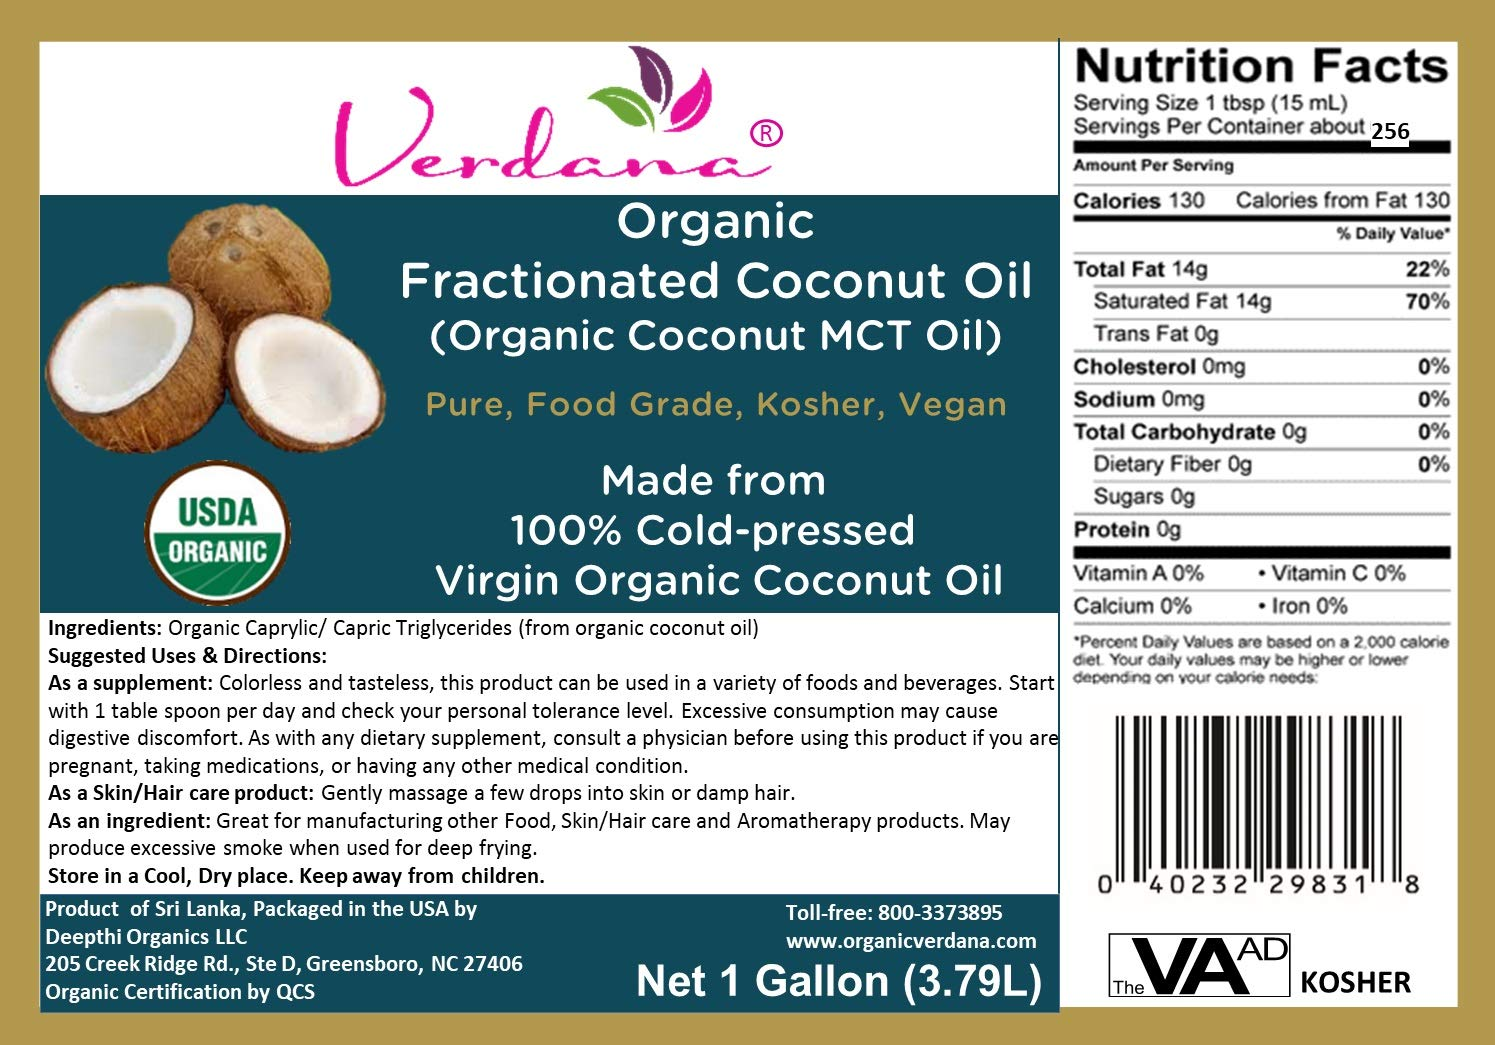 Verdana Organic MCT Oil – USDA Organic Fractionated Coconut Oil - 1 Gallon - Kosher - 100% Made from Organic Coconuts – True Medium Chain Glycerides C8 and C10- Best Coconut MCT for Keto and Paleo by Organic Verdana (Image #4)